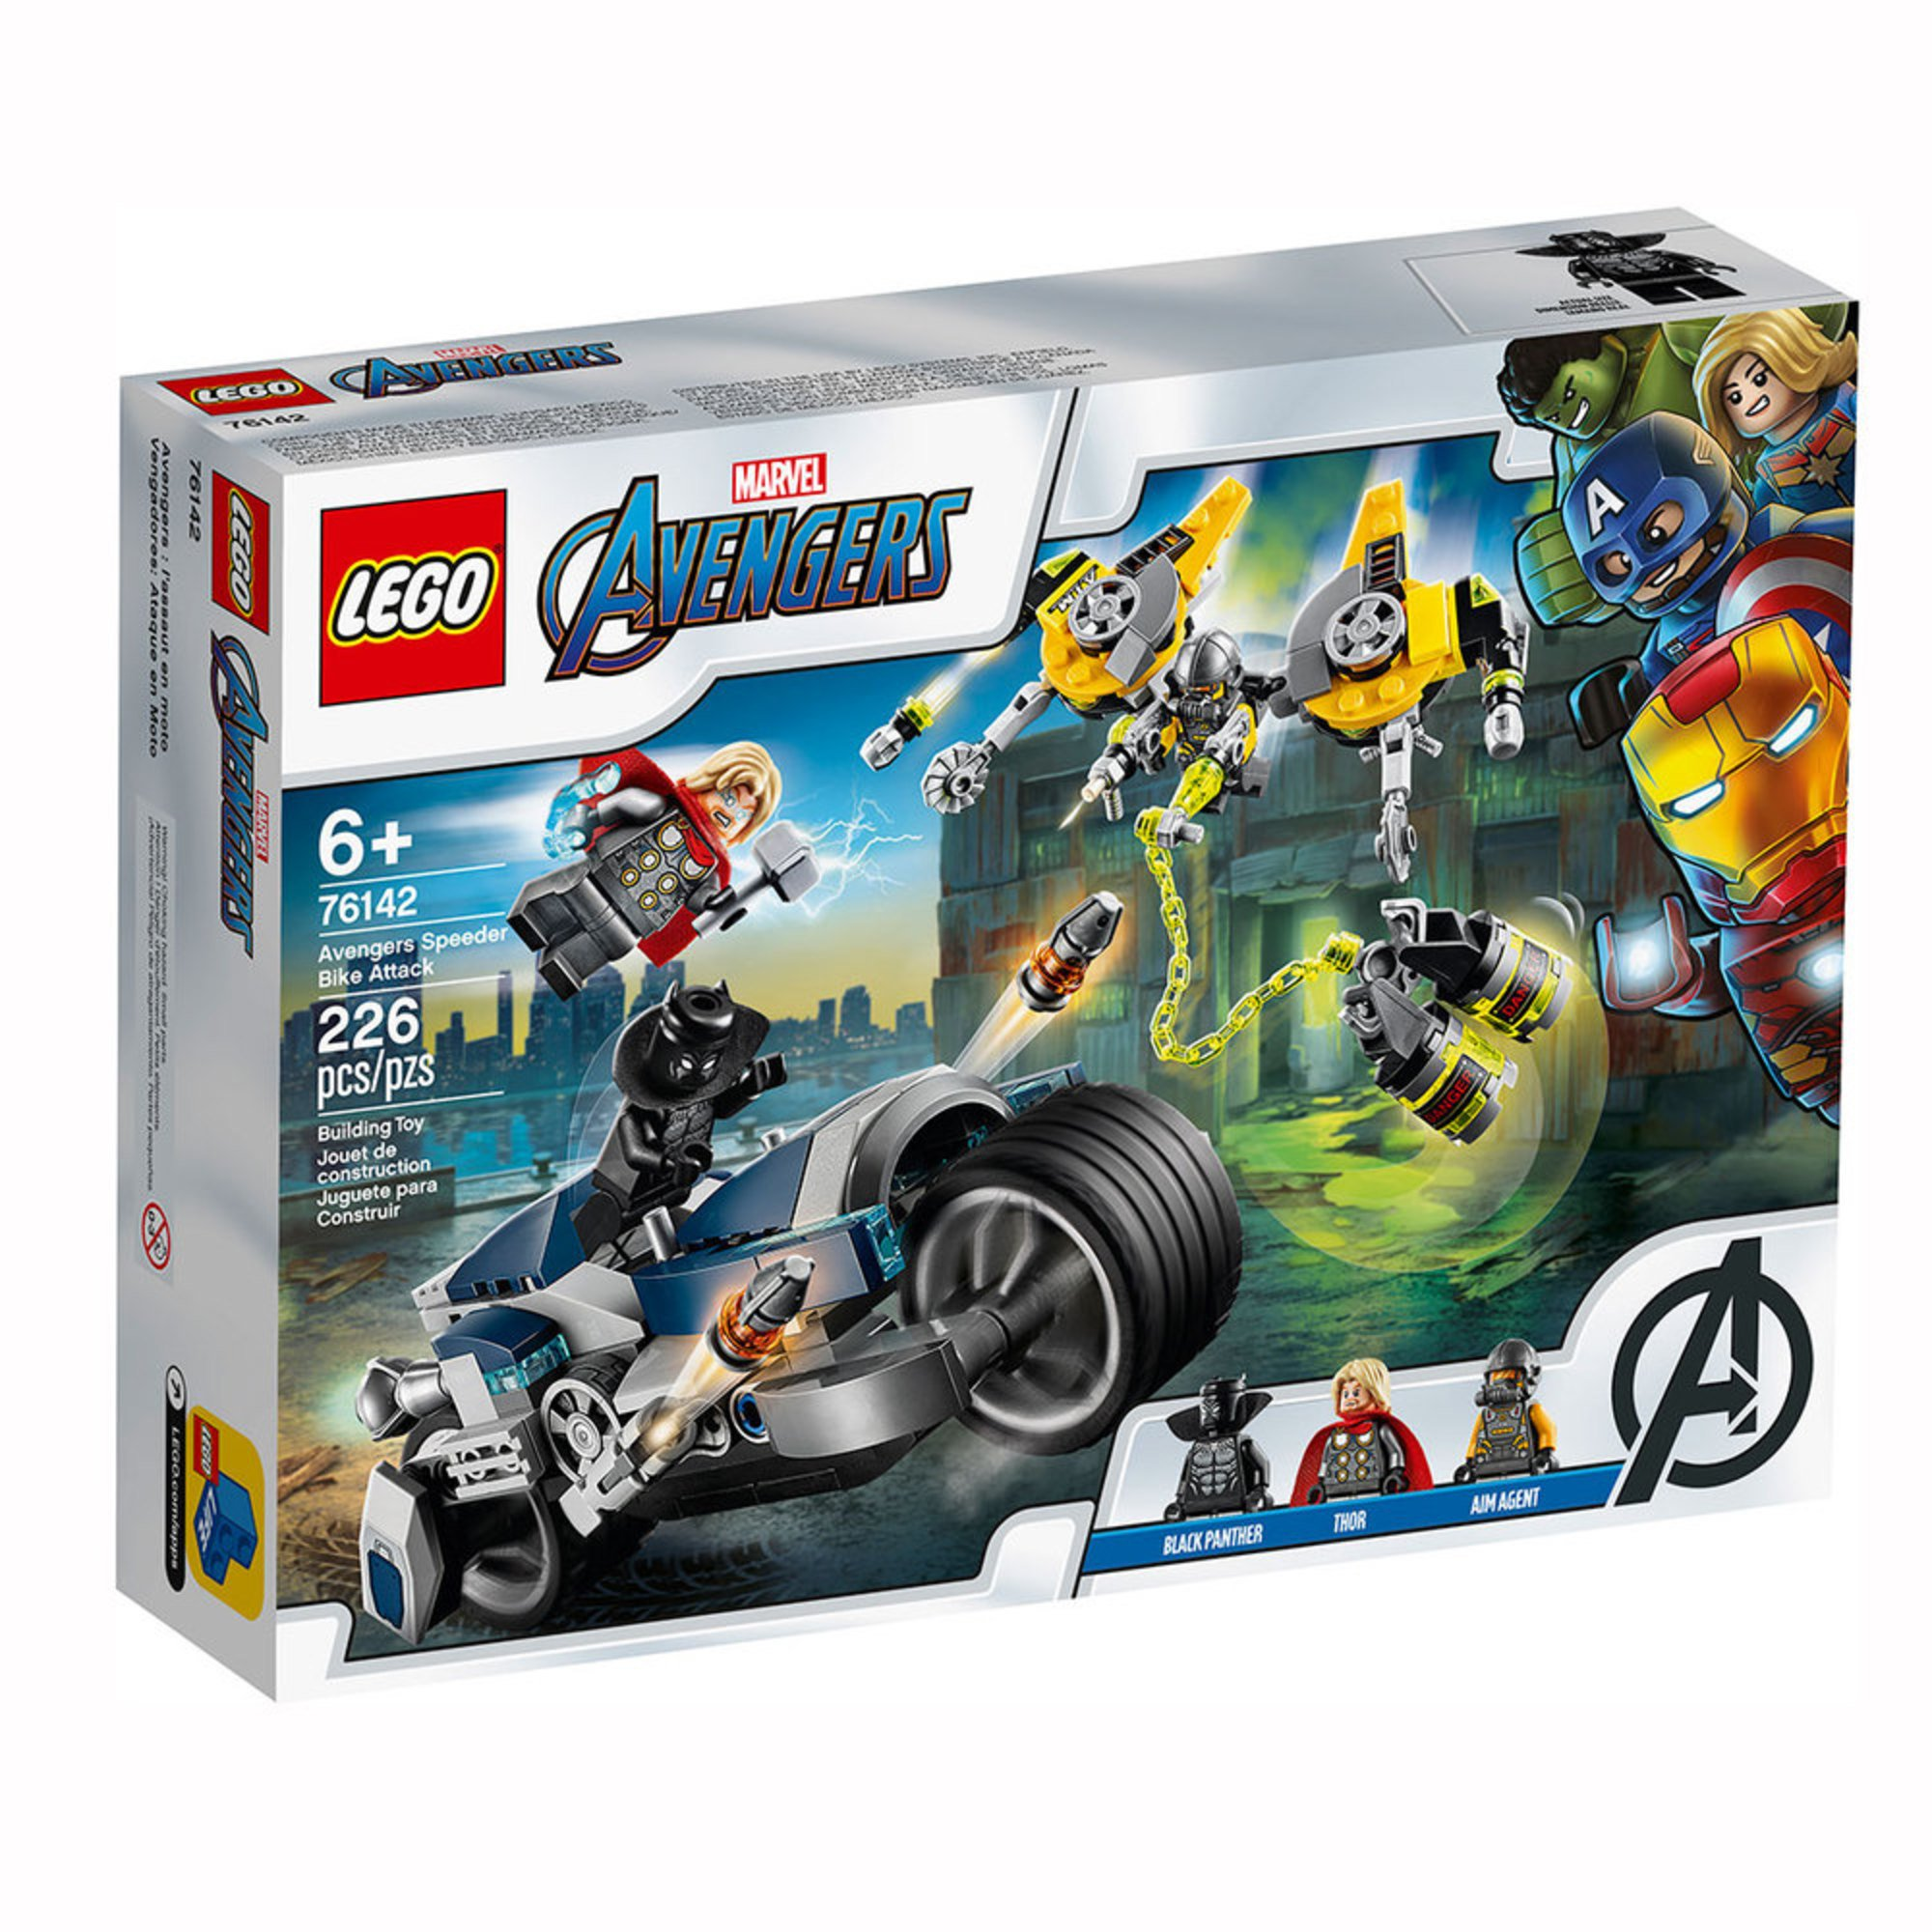 LEGO AIM Minifigure From Super Heroes New Set